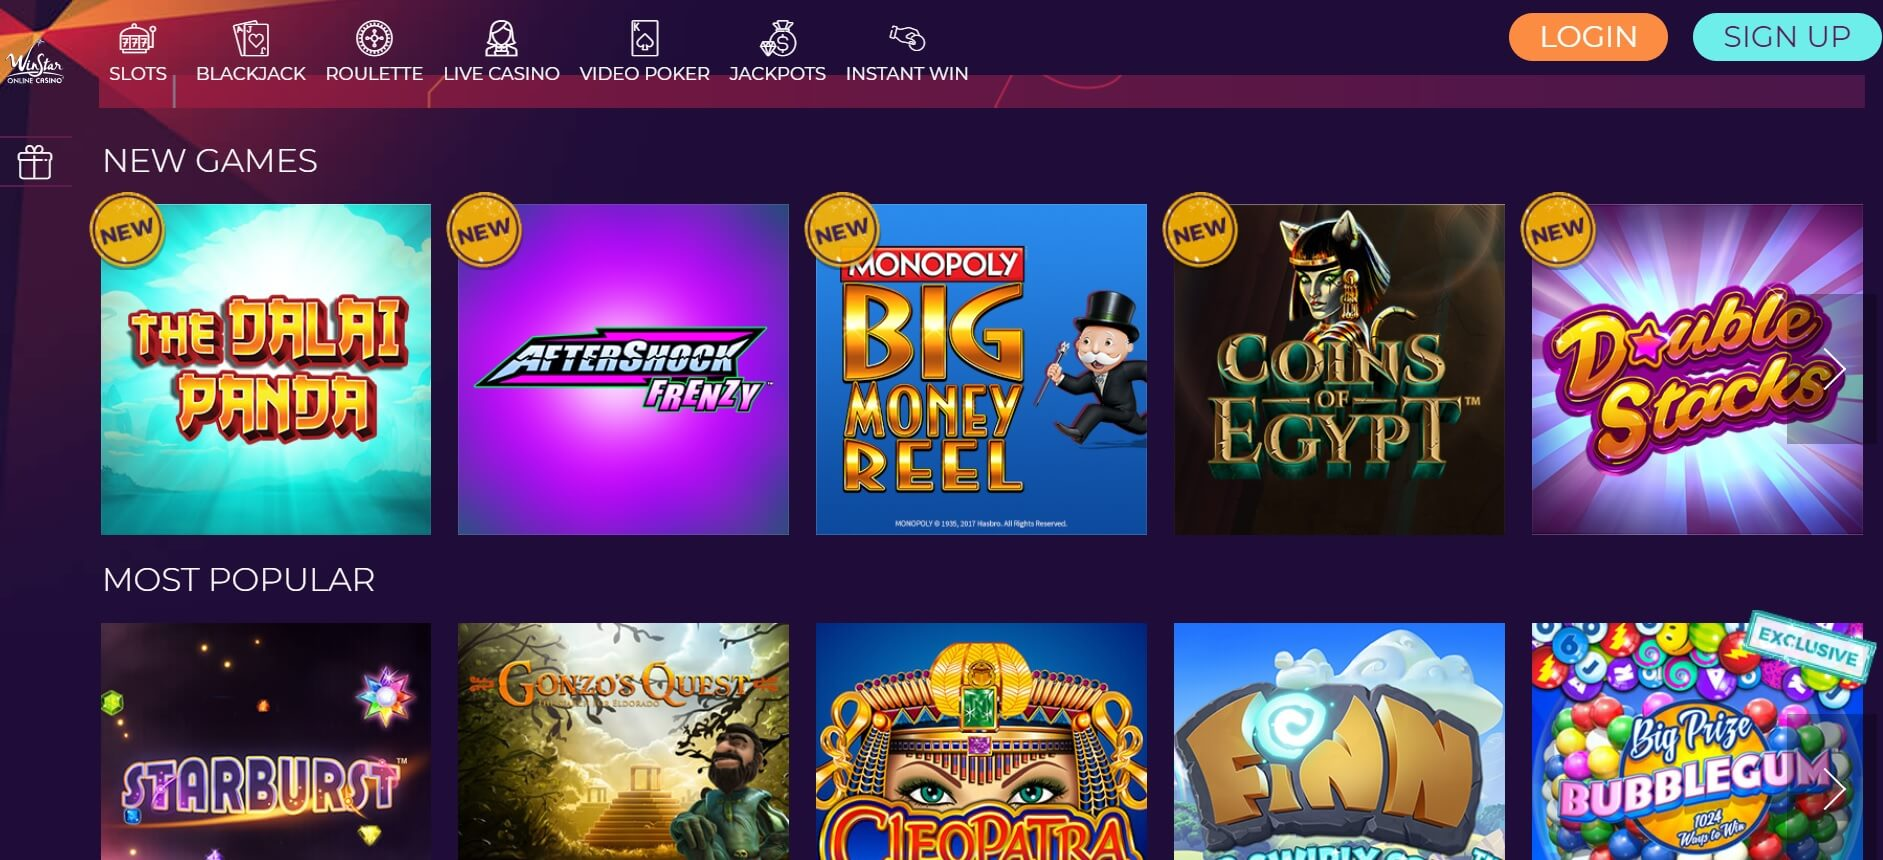 winstar casino new slot sites review